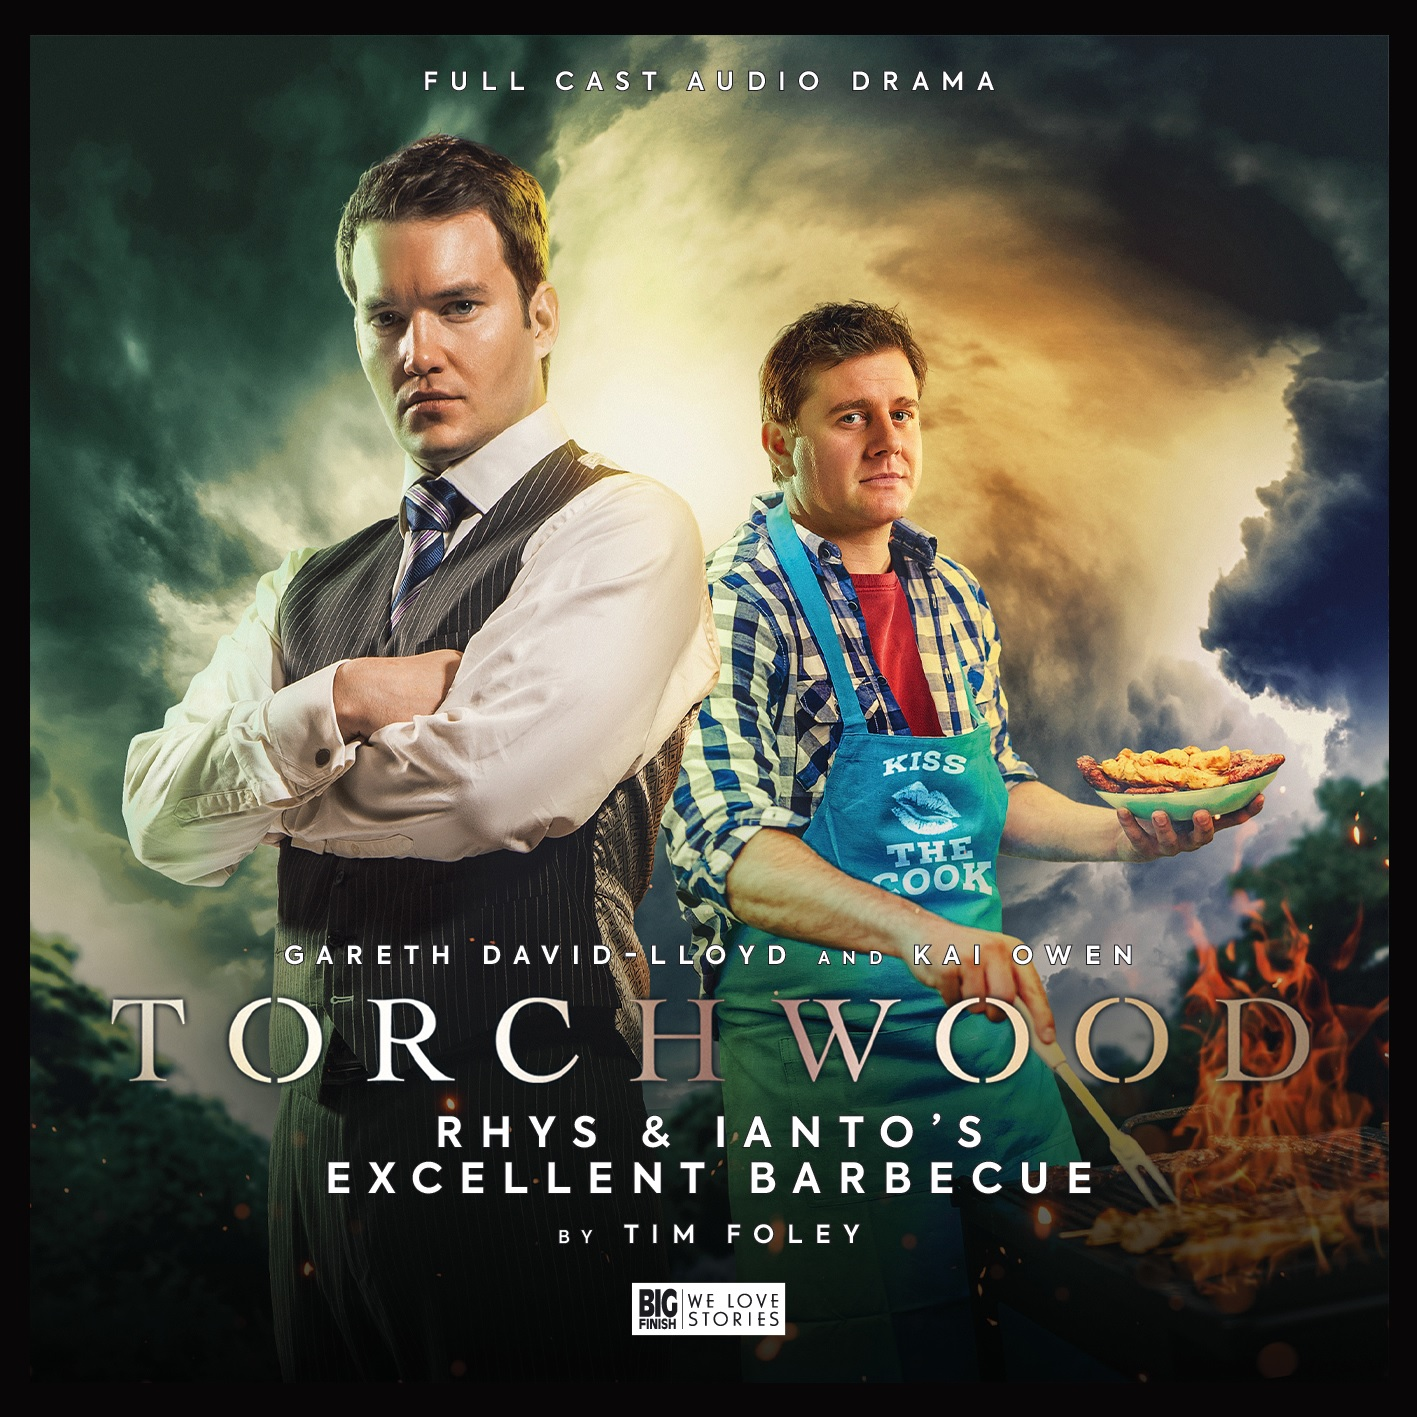 Reviewed: Big Finish's Torchwood – Rhys and Ianto's Excellent Barbecue